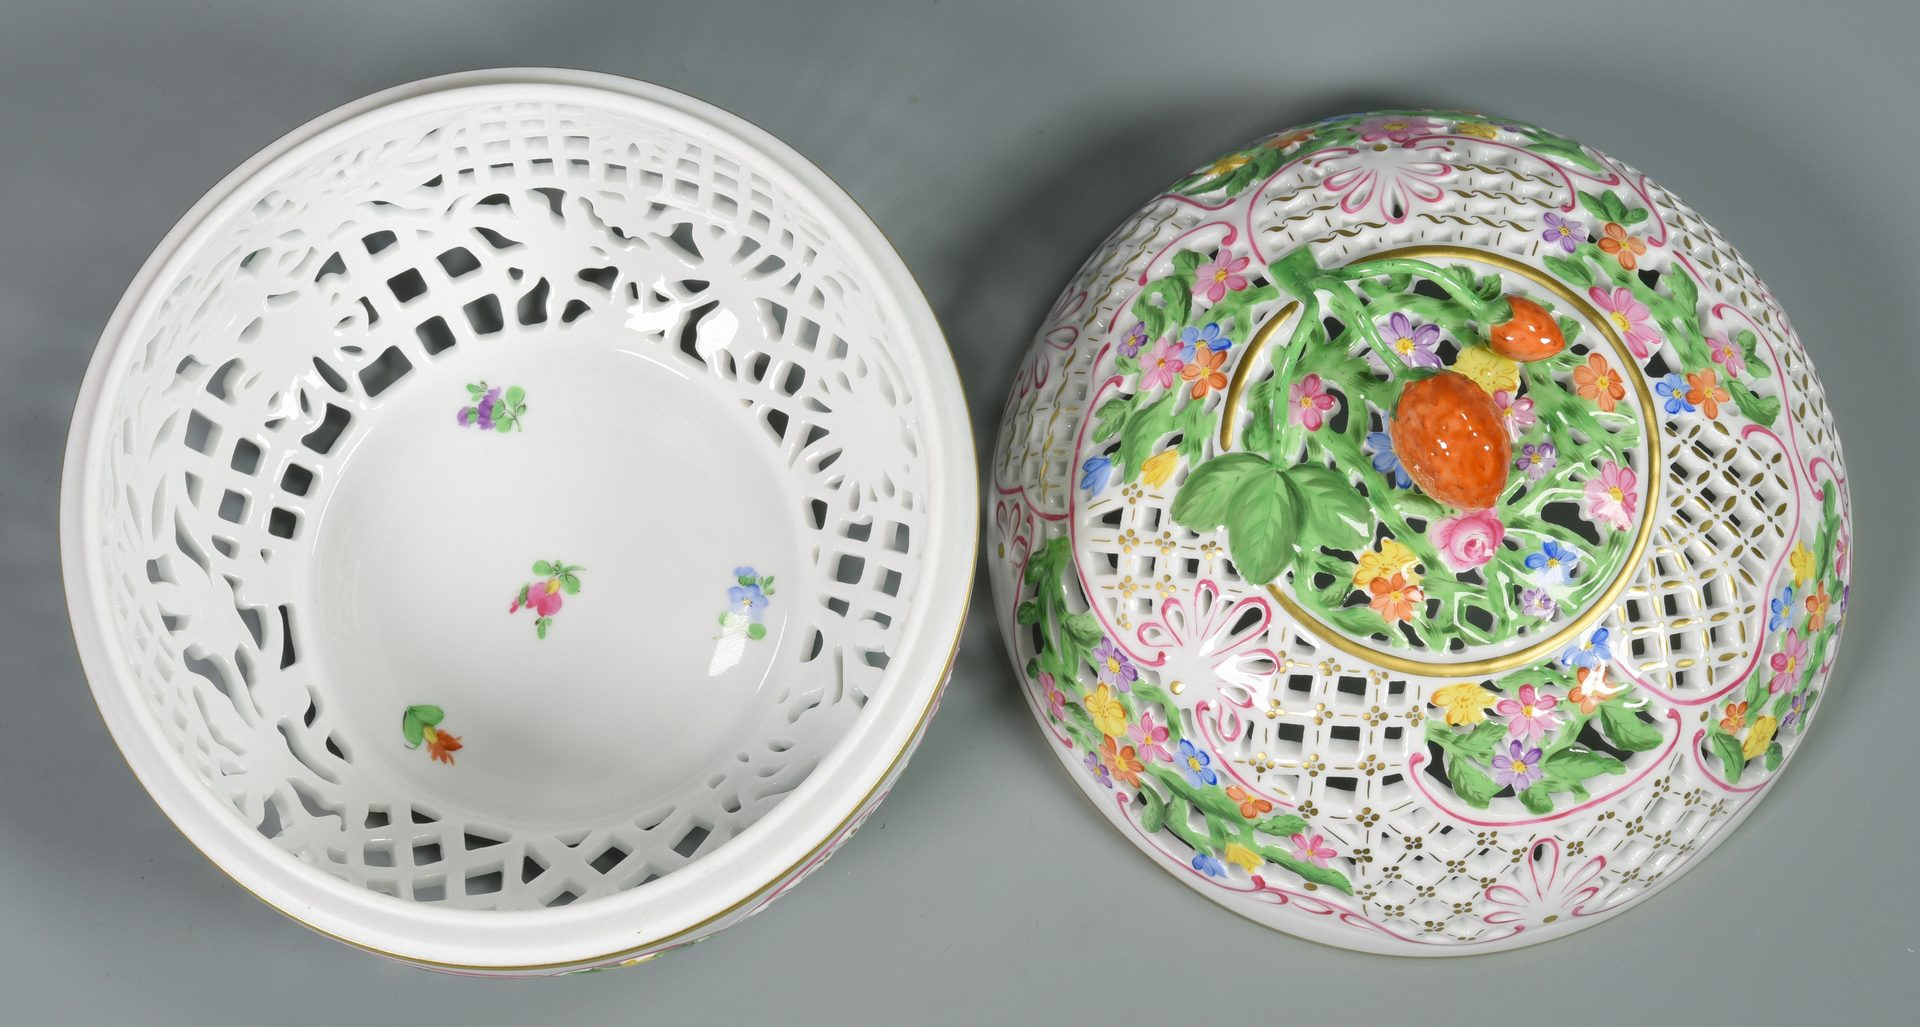 Lot 688: 4 Pcs. Herend Porcelain